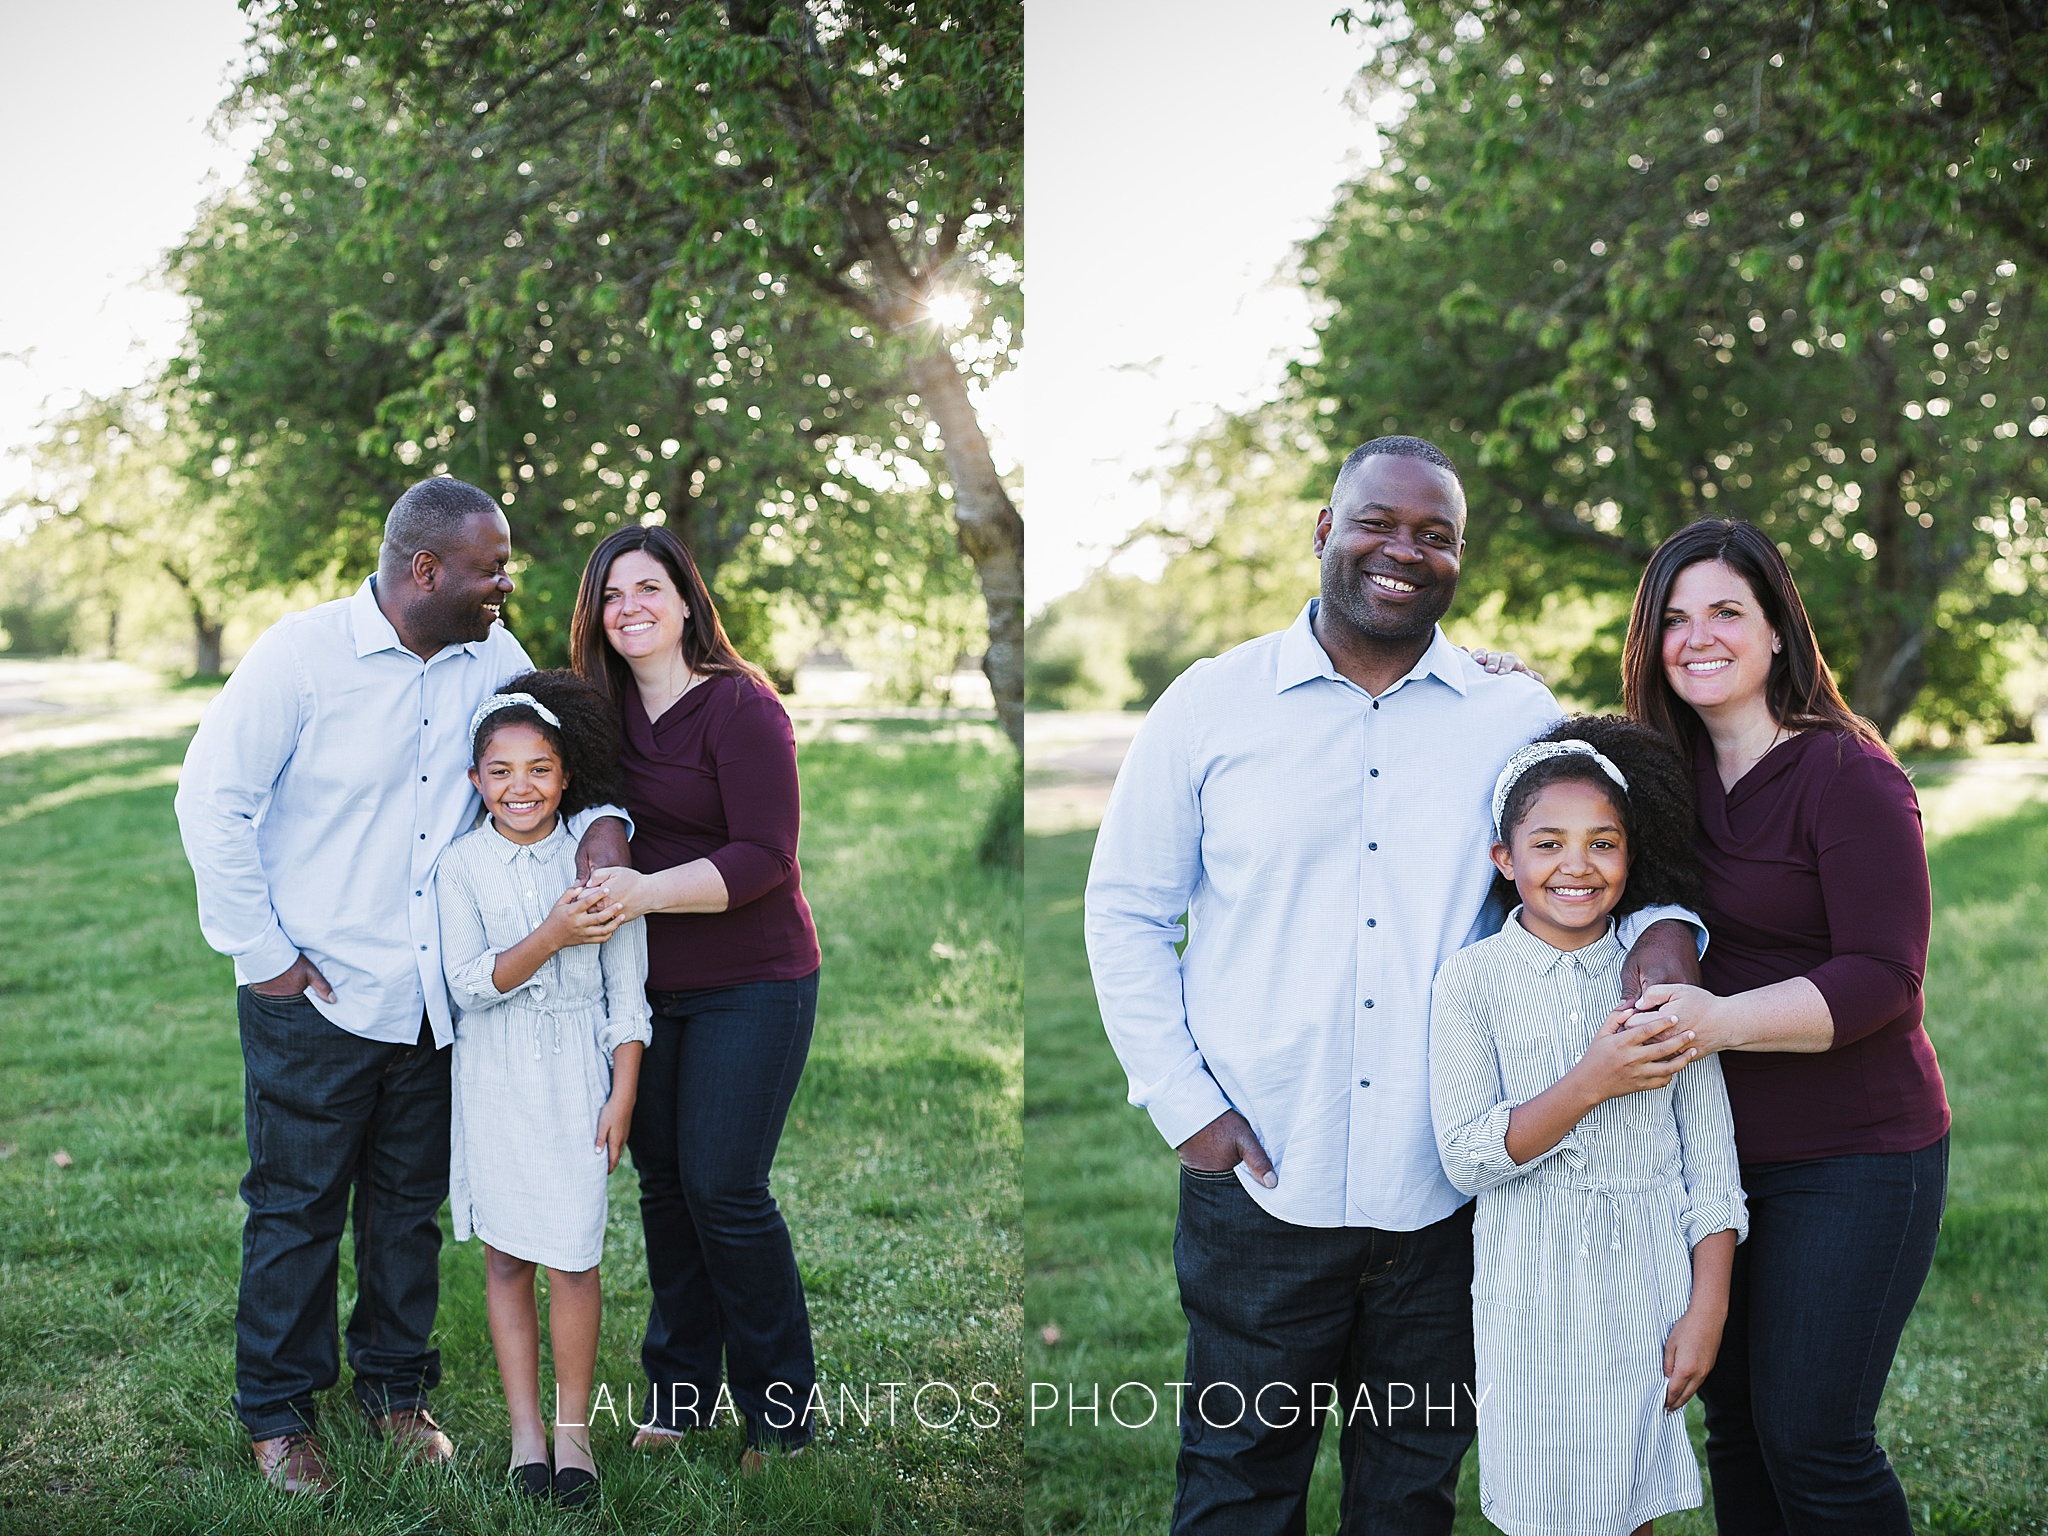 Laura Santos Photography Portland Oregon Family Photographer_0942.jpg